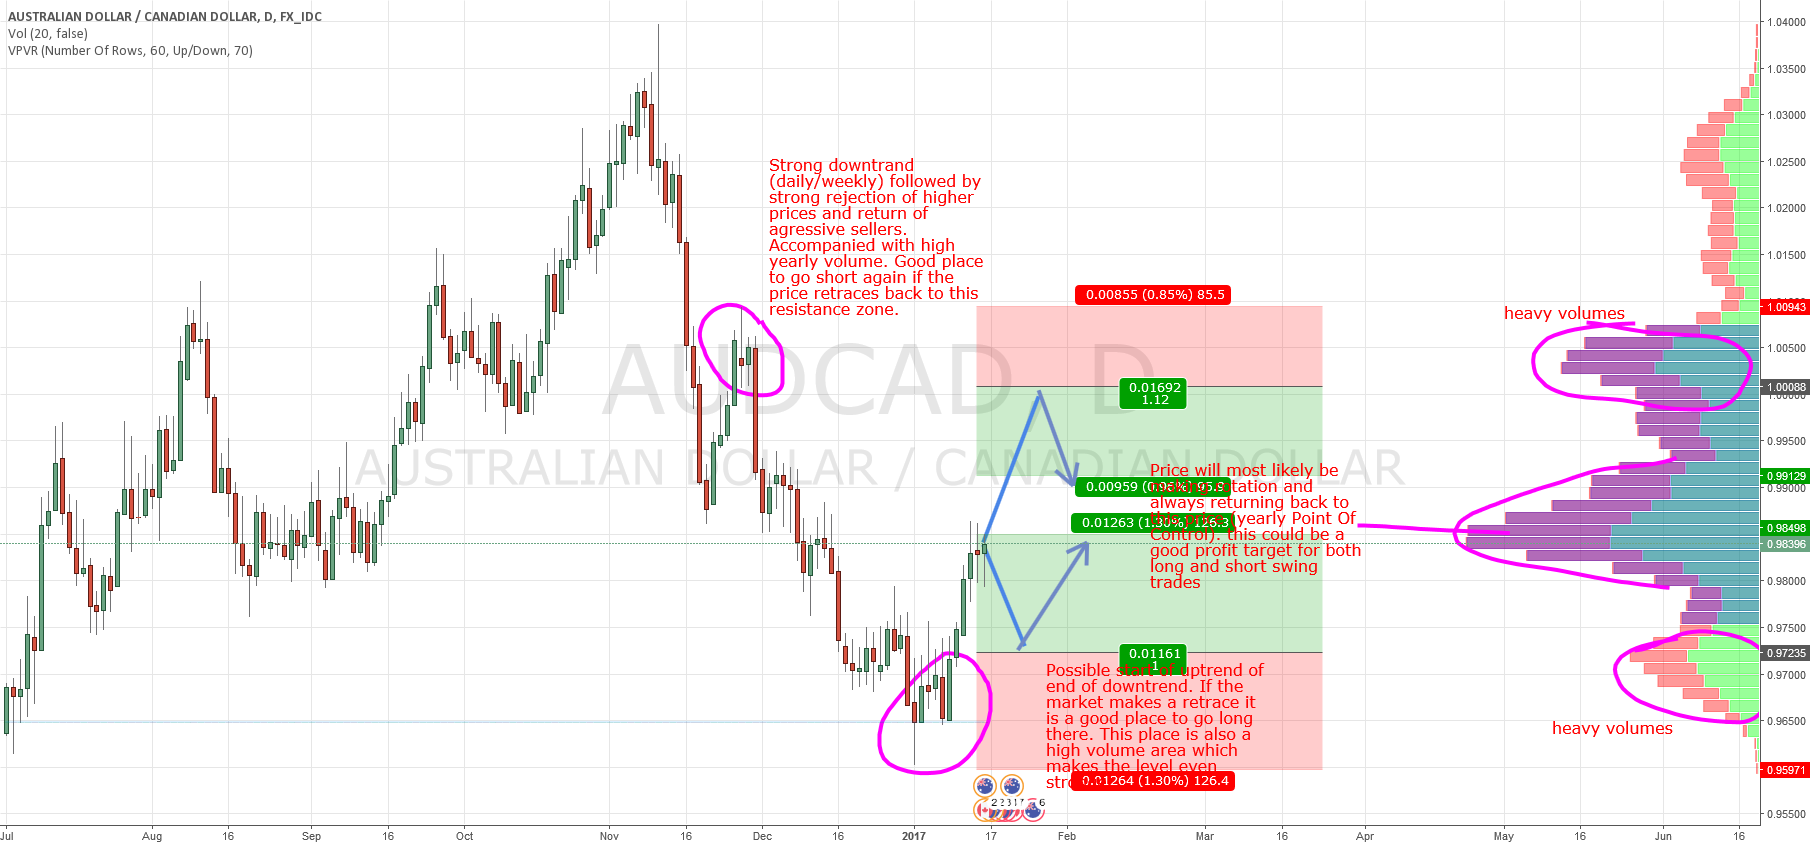 AUD/CAD swings based on Market Profile and Price Action